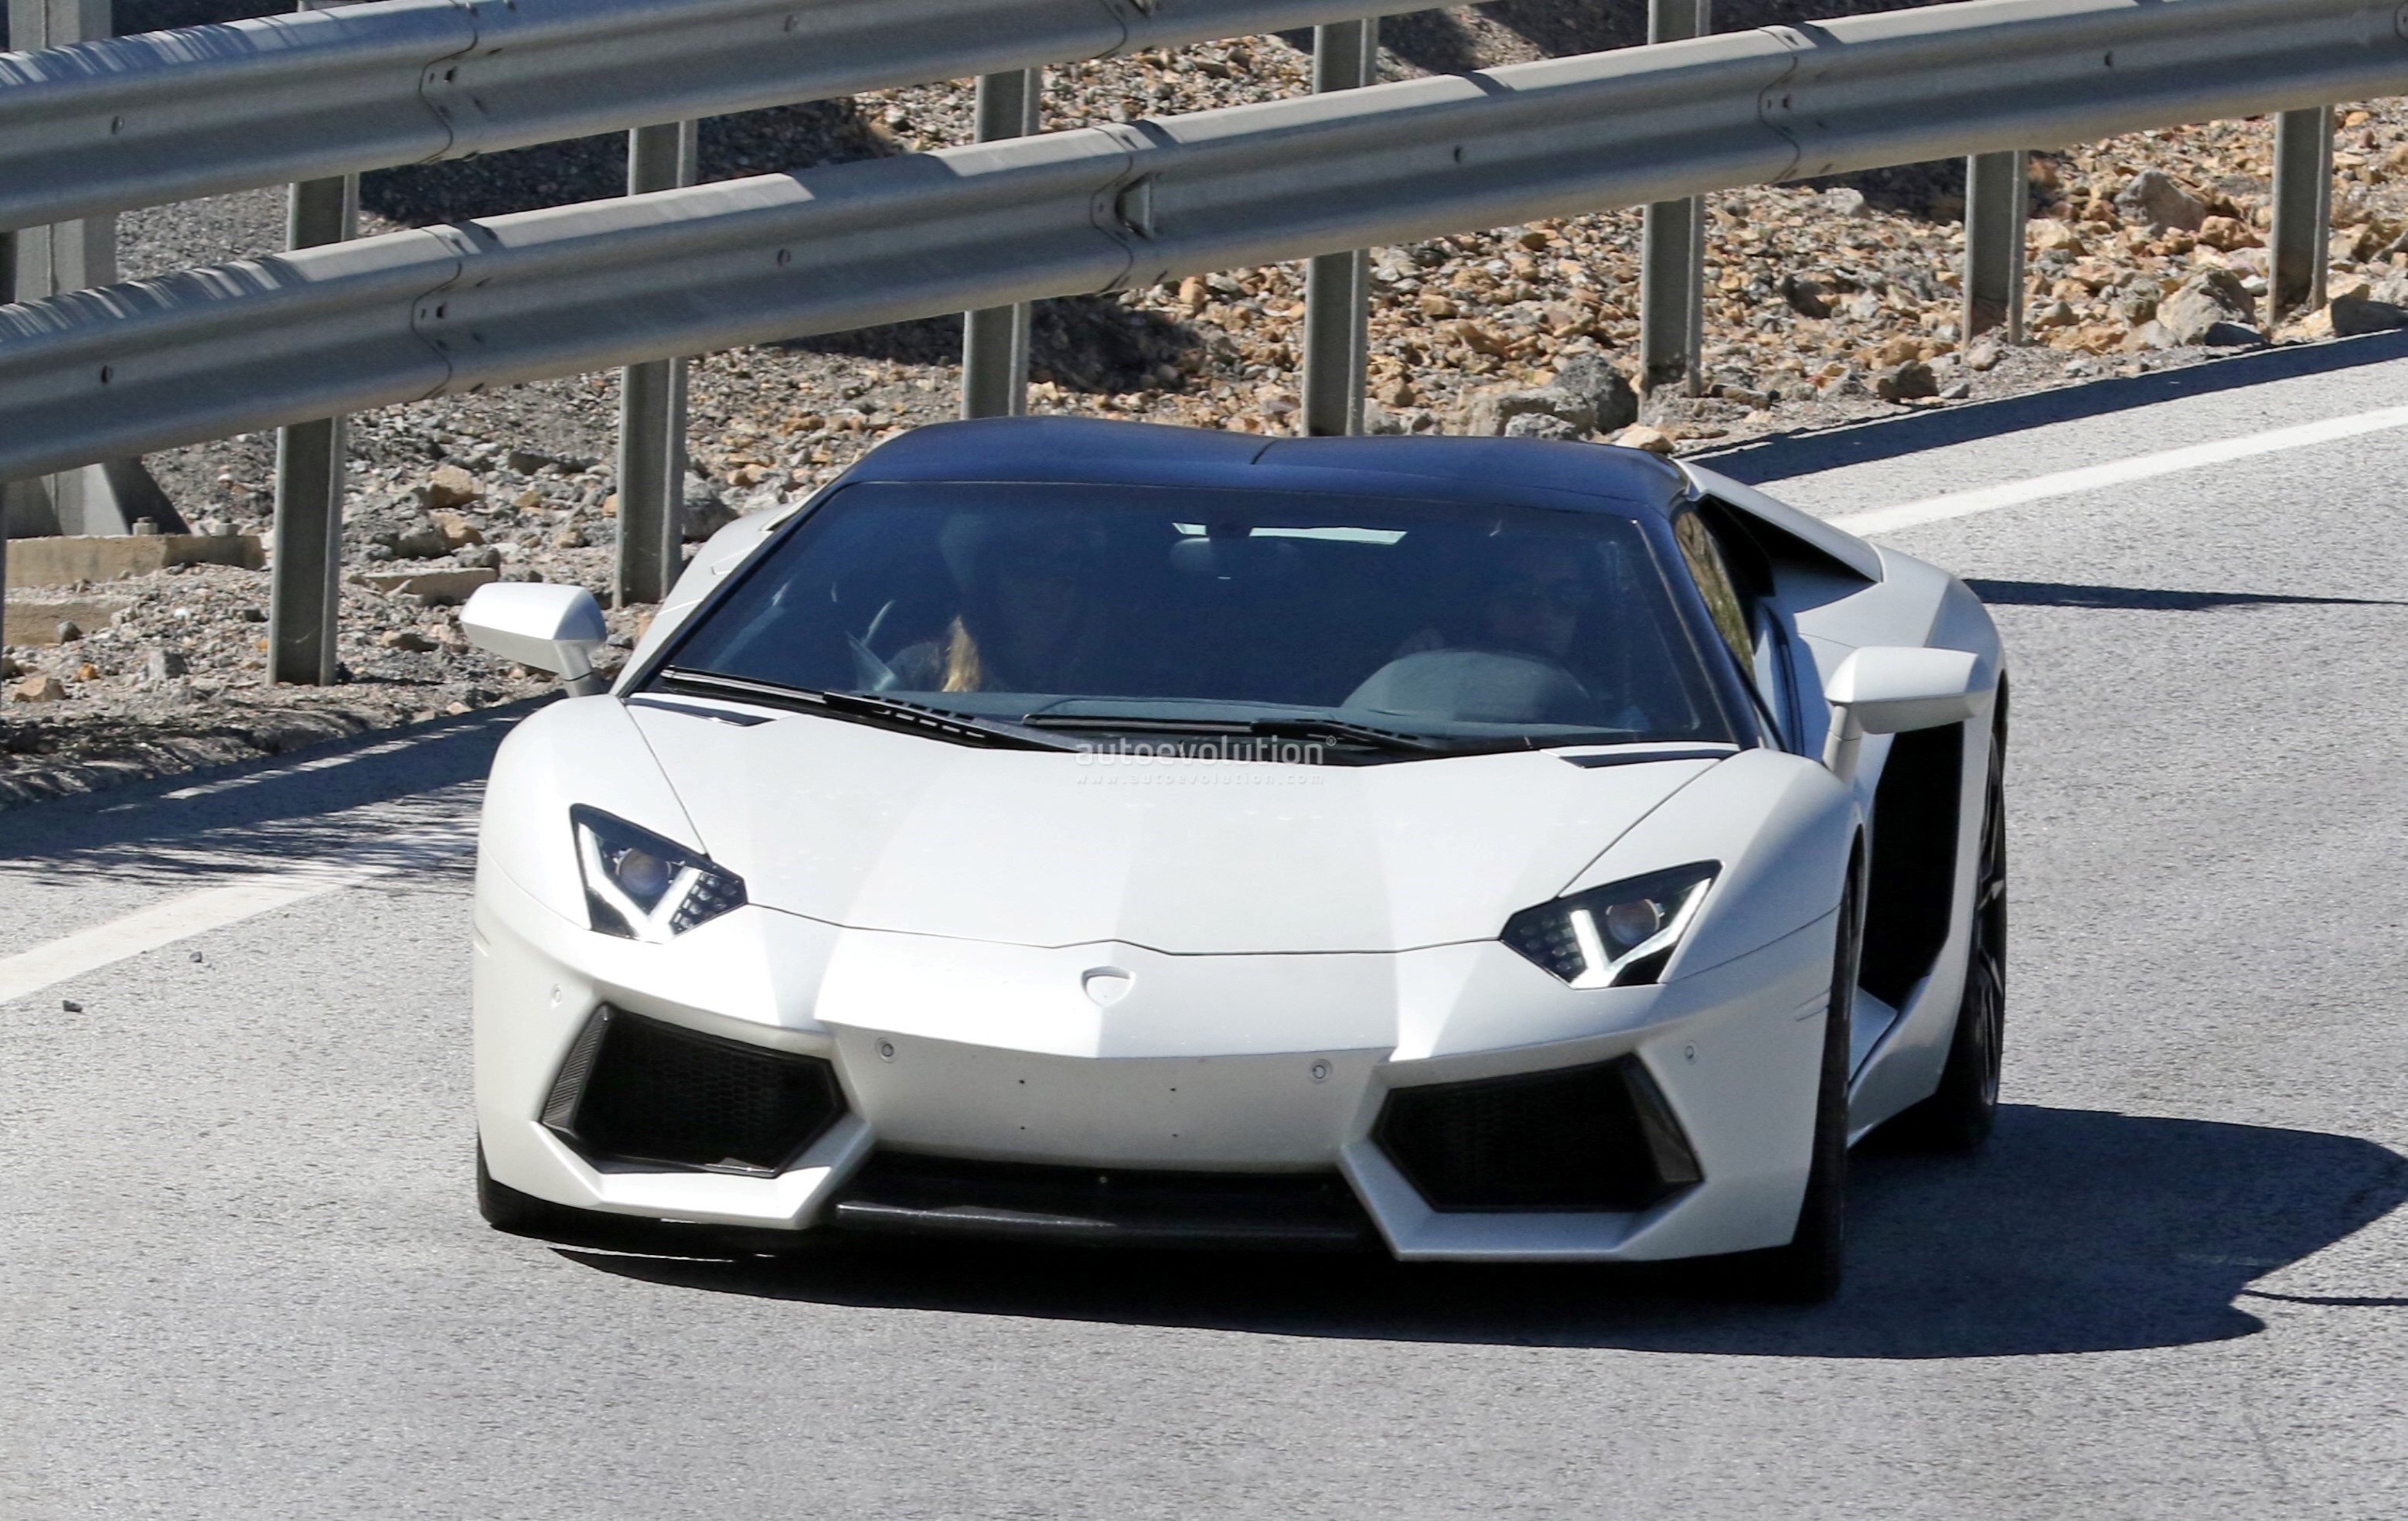 Spied New Lamborghini Aventador Variant Incoming, Could Be